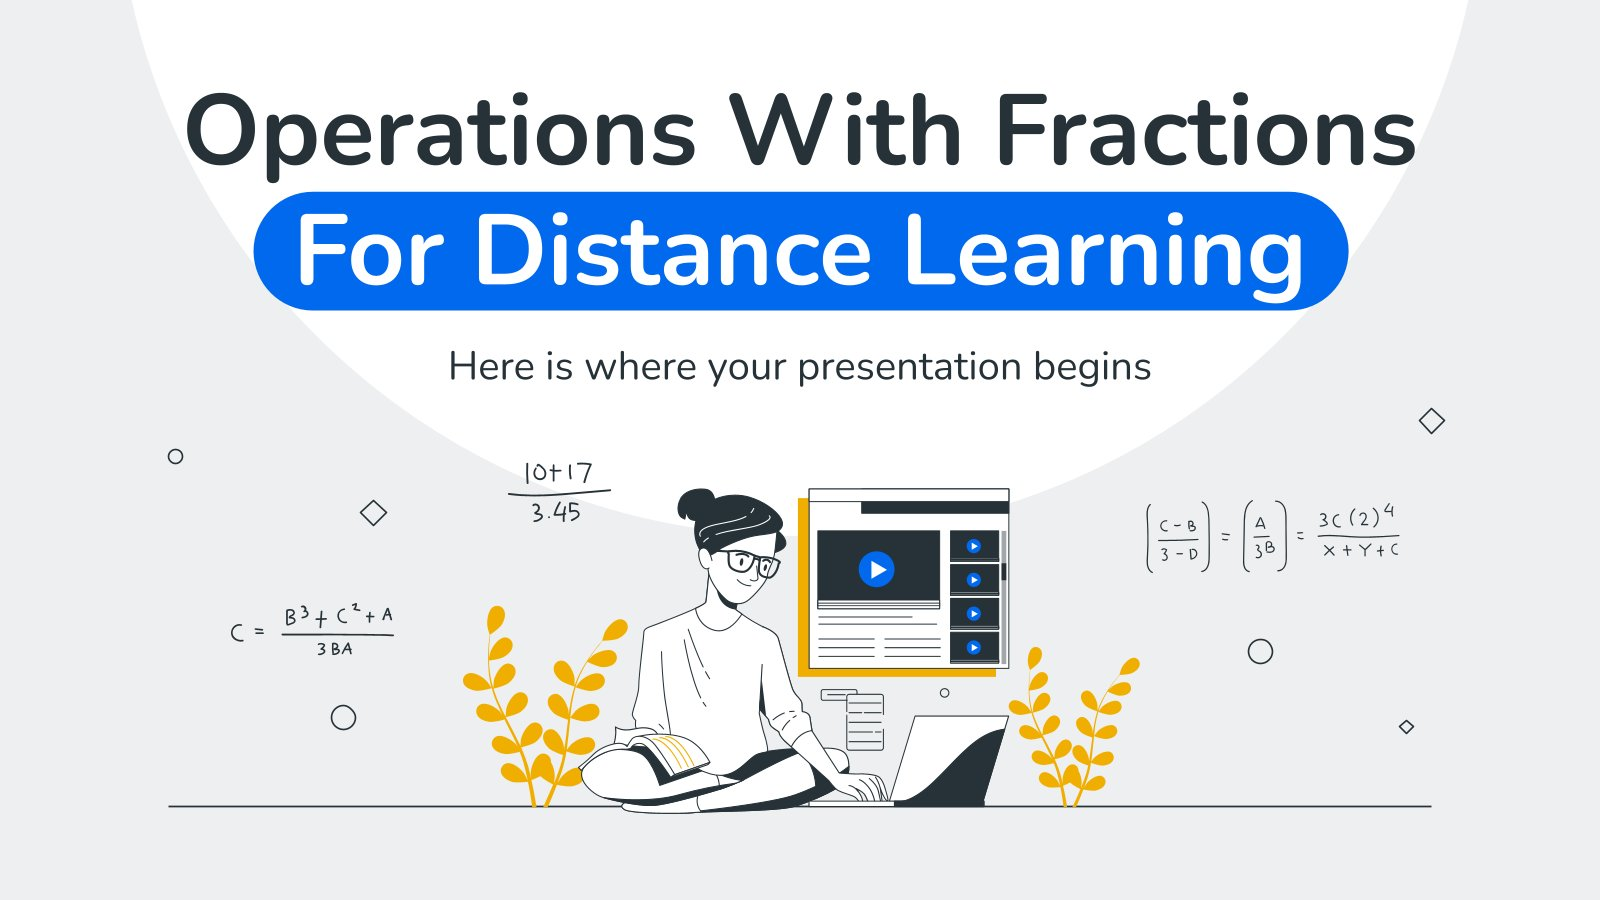 Operations with Fractions for Distance Learning presentation template